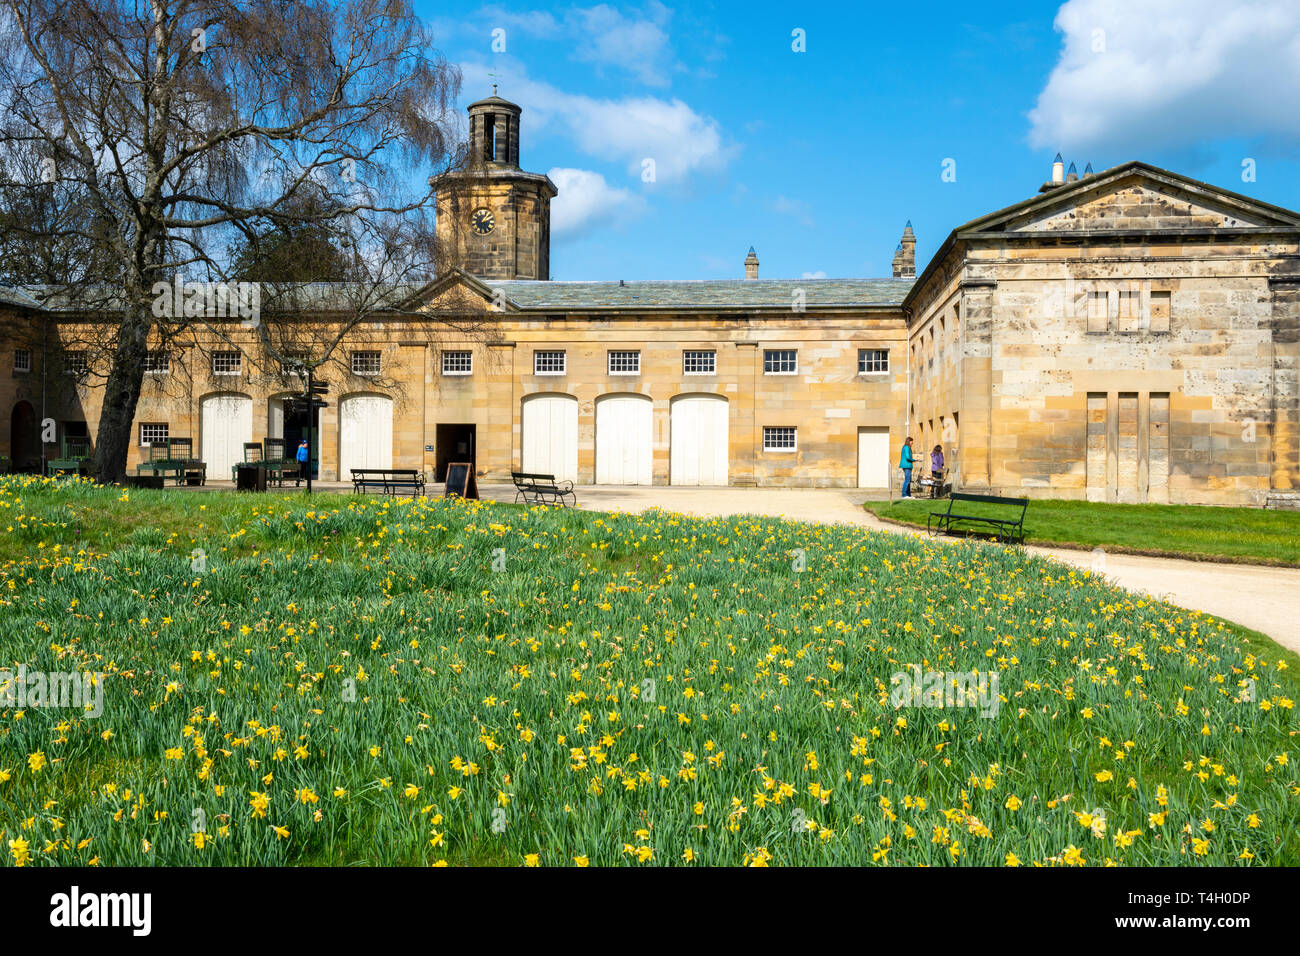 Stable block and clock tower at Belsay Hall, an early 19th Century mansion house, in Northumberland, England, UK Stock Photo